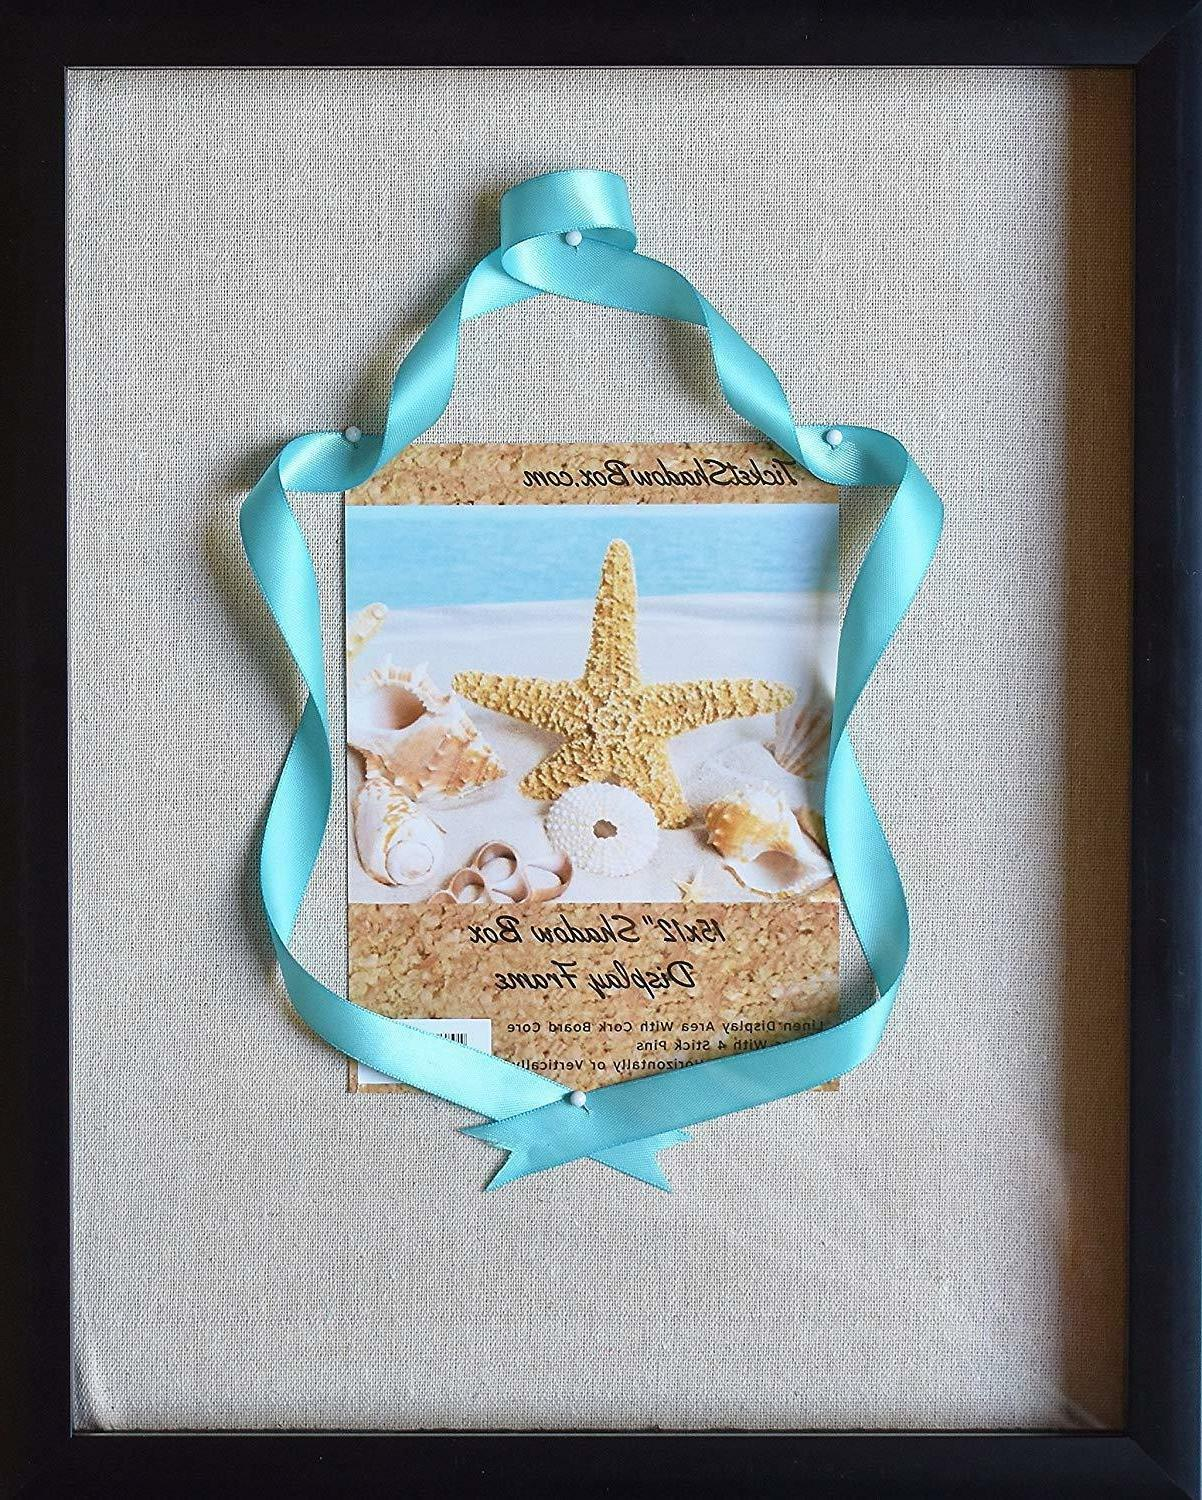 12x15 display shadow box frame with linen